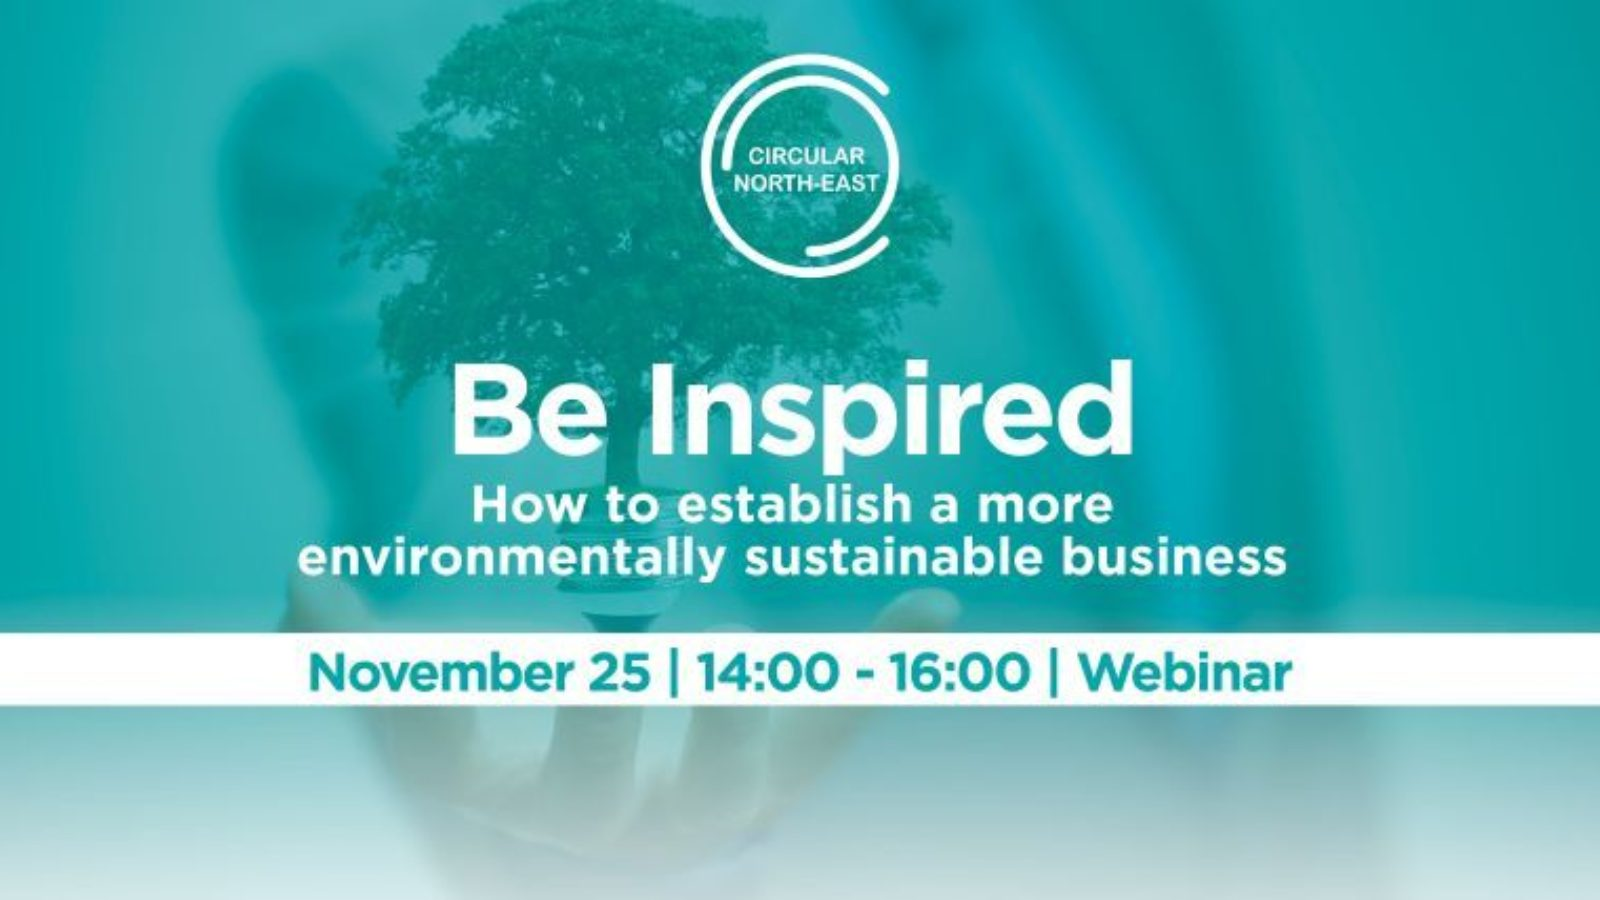 Be Inspired - How to establish a more environmentally sustainable business